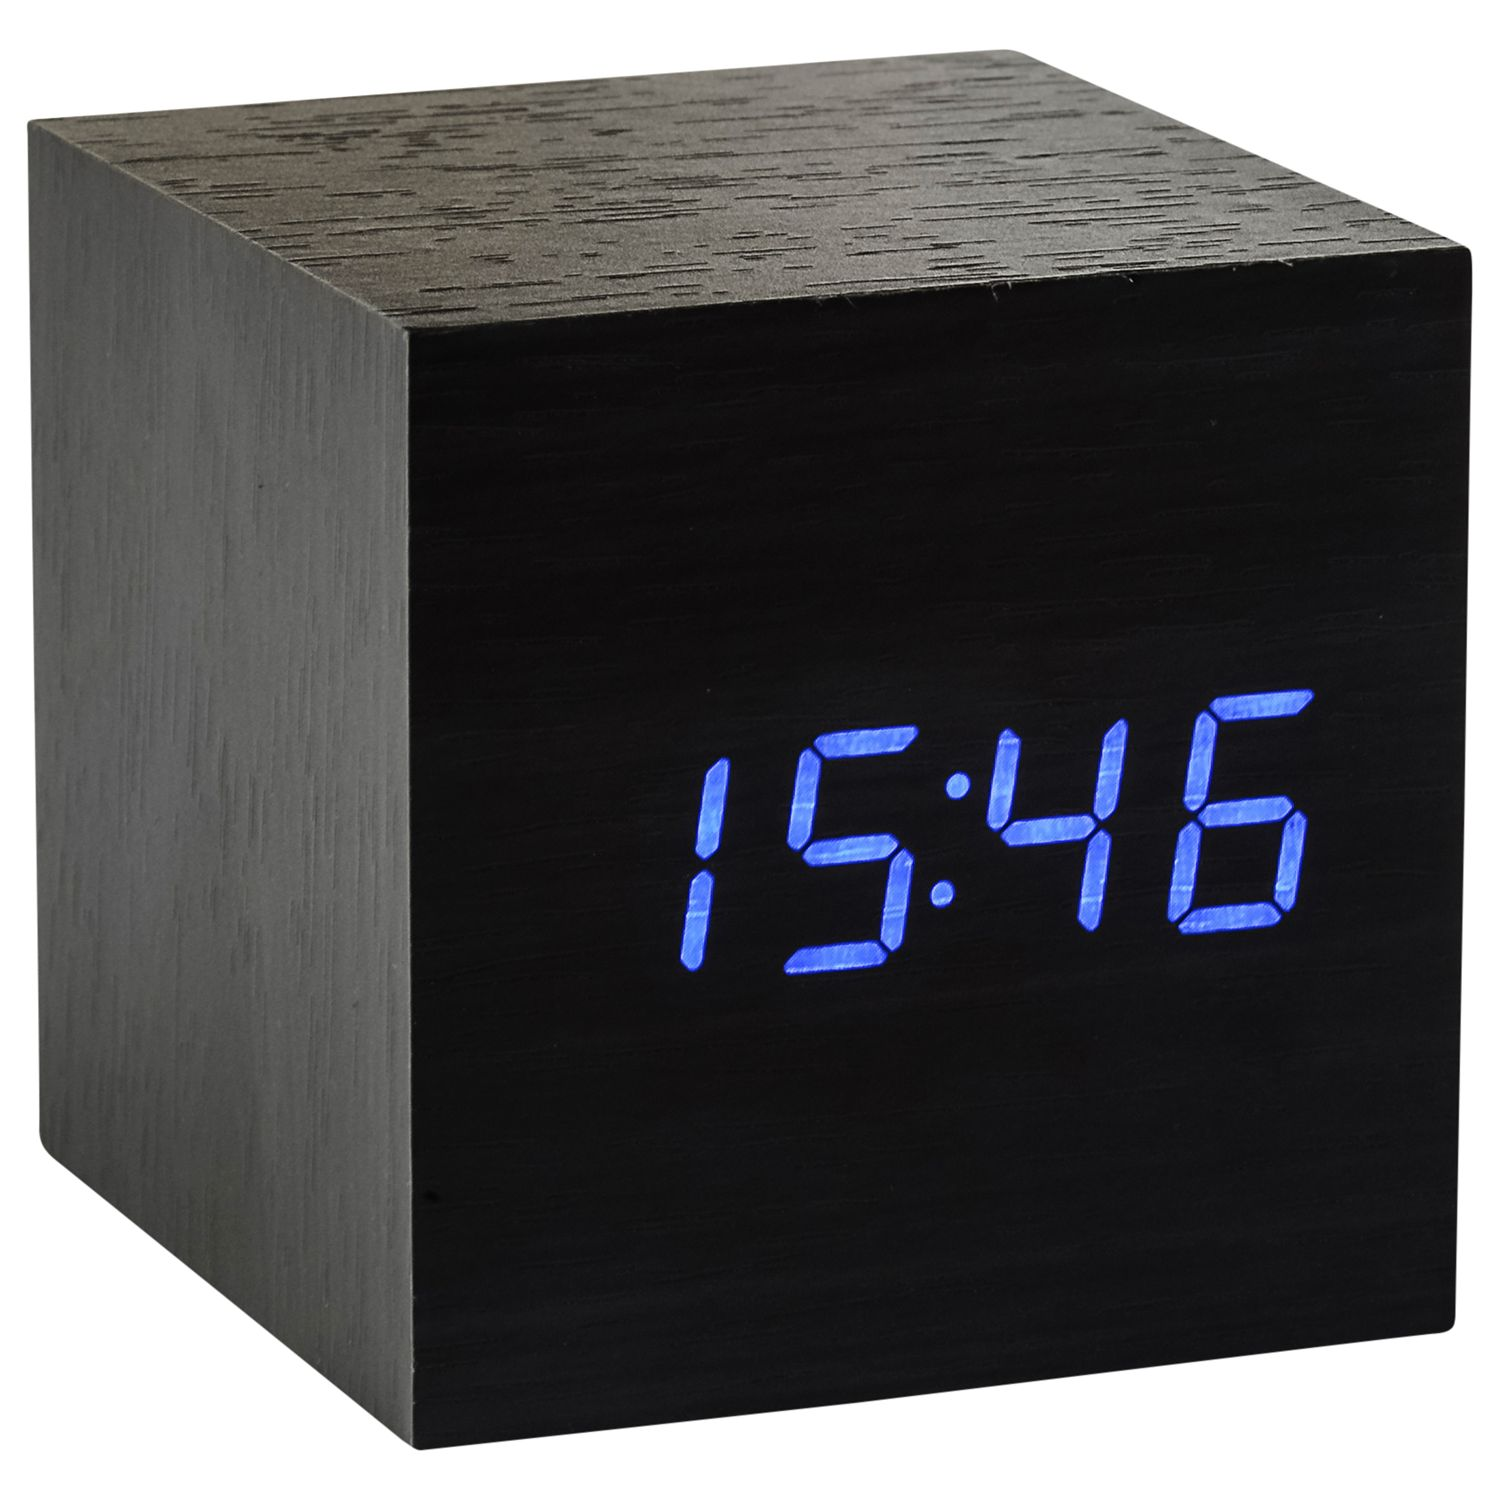 gingko click clock cube led alarm clock bluewater. Black Bedroom Furniture Sets. Home Design Ideas